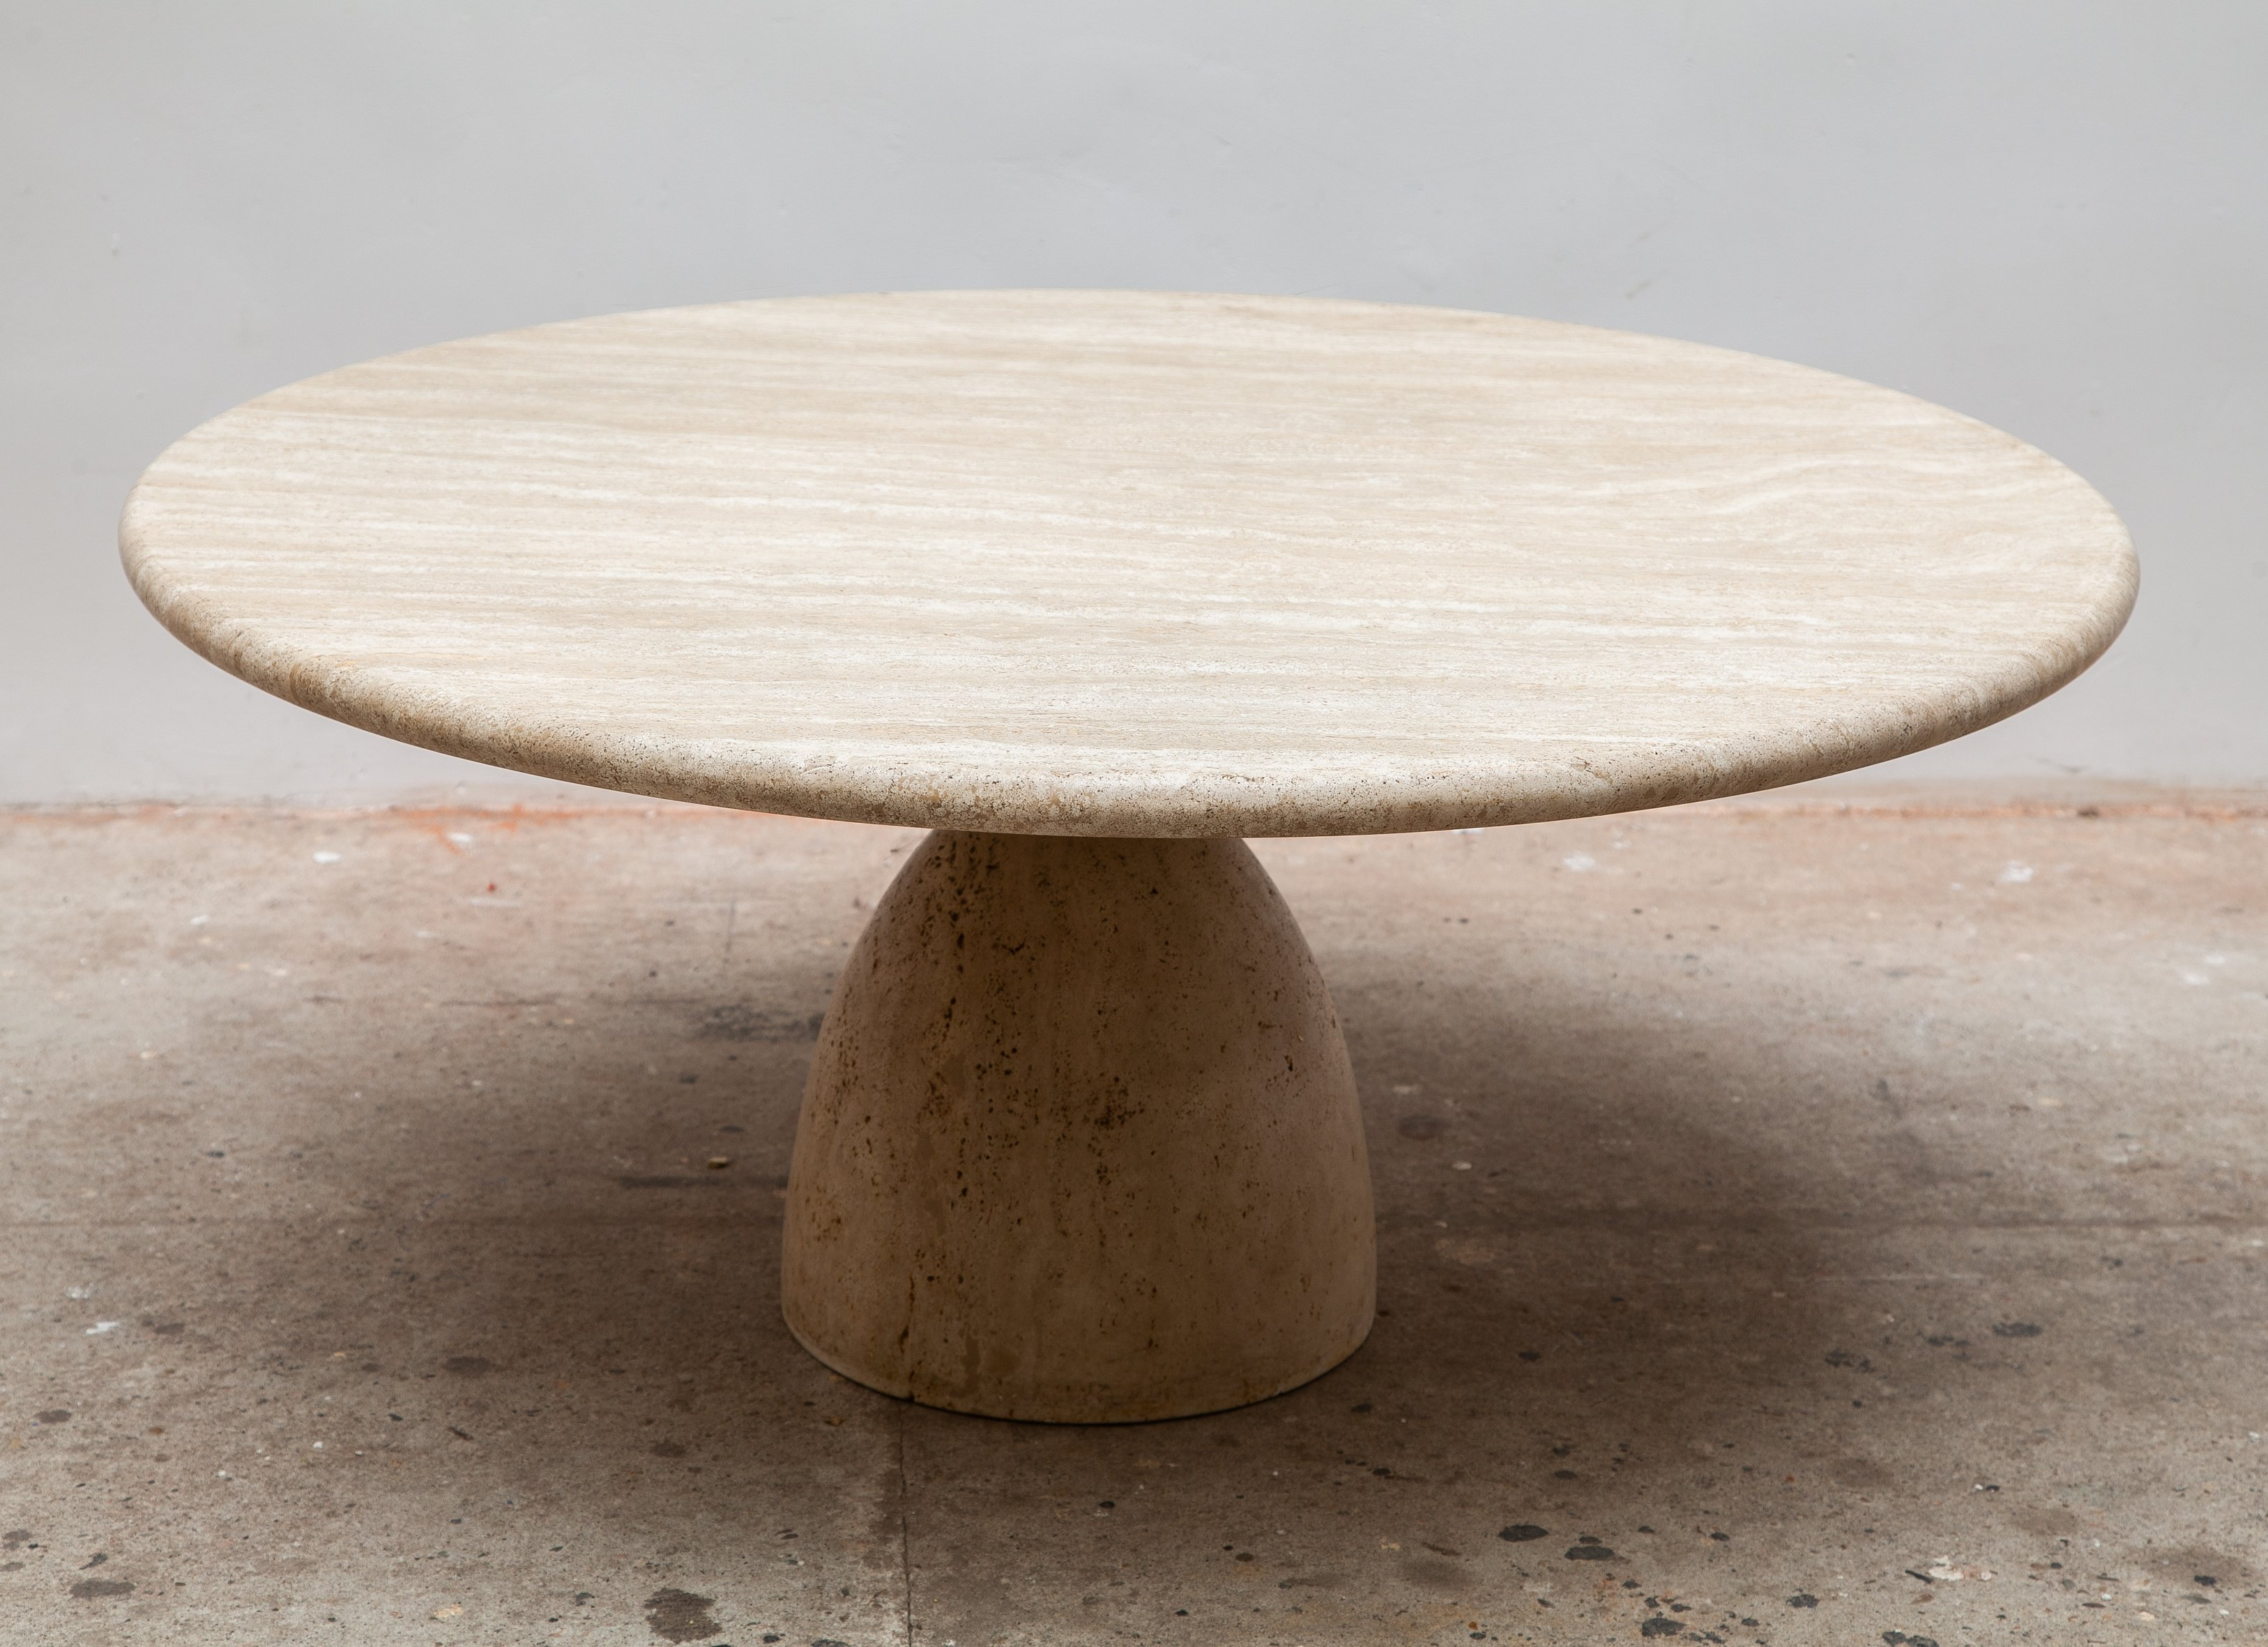 Round Solid Travertine Pedestal Coffee Table By Peter Draenert 1970s 117240